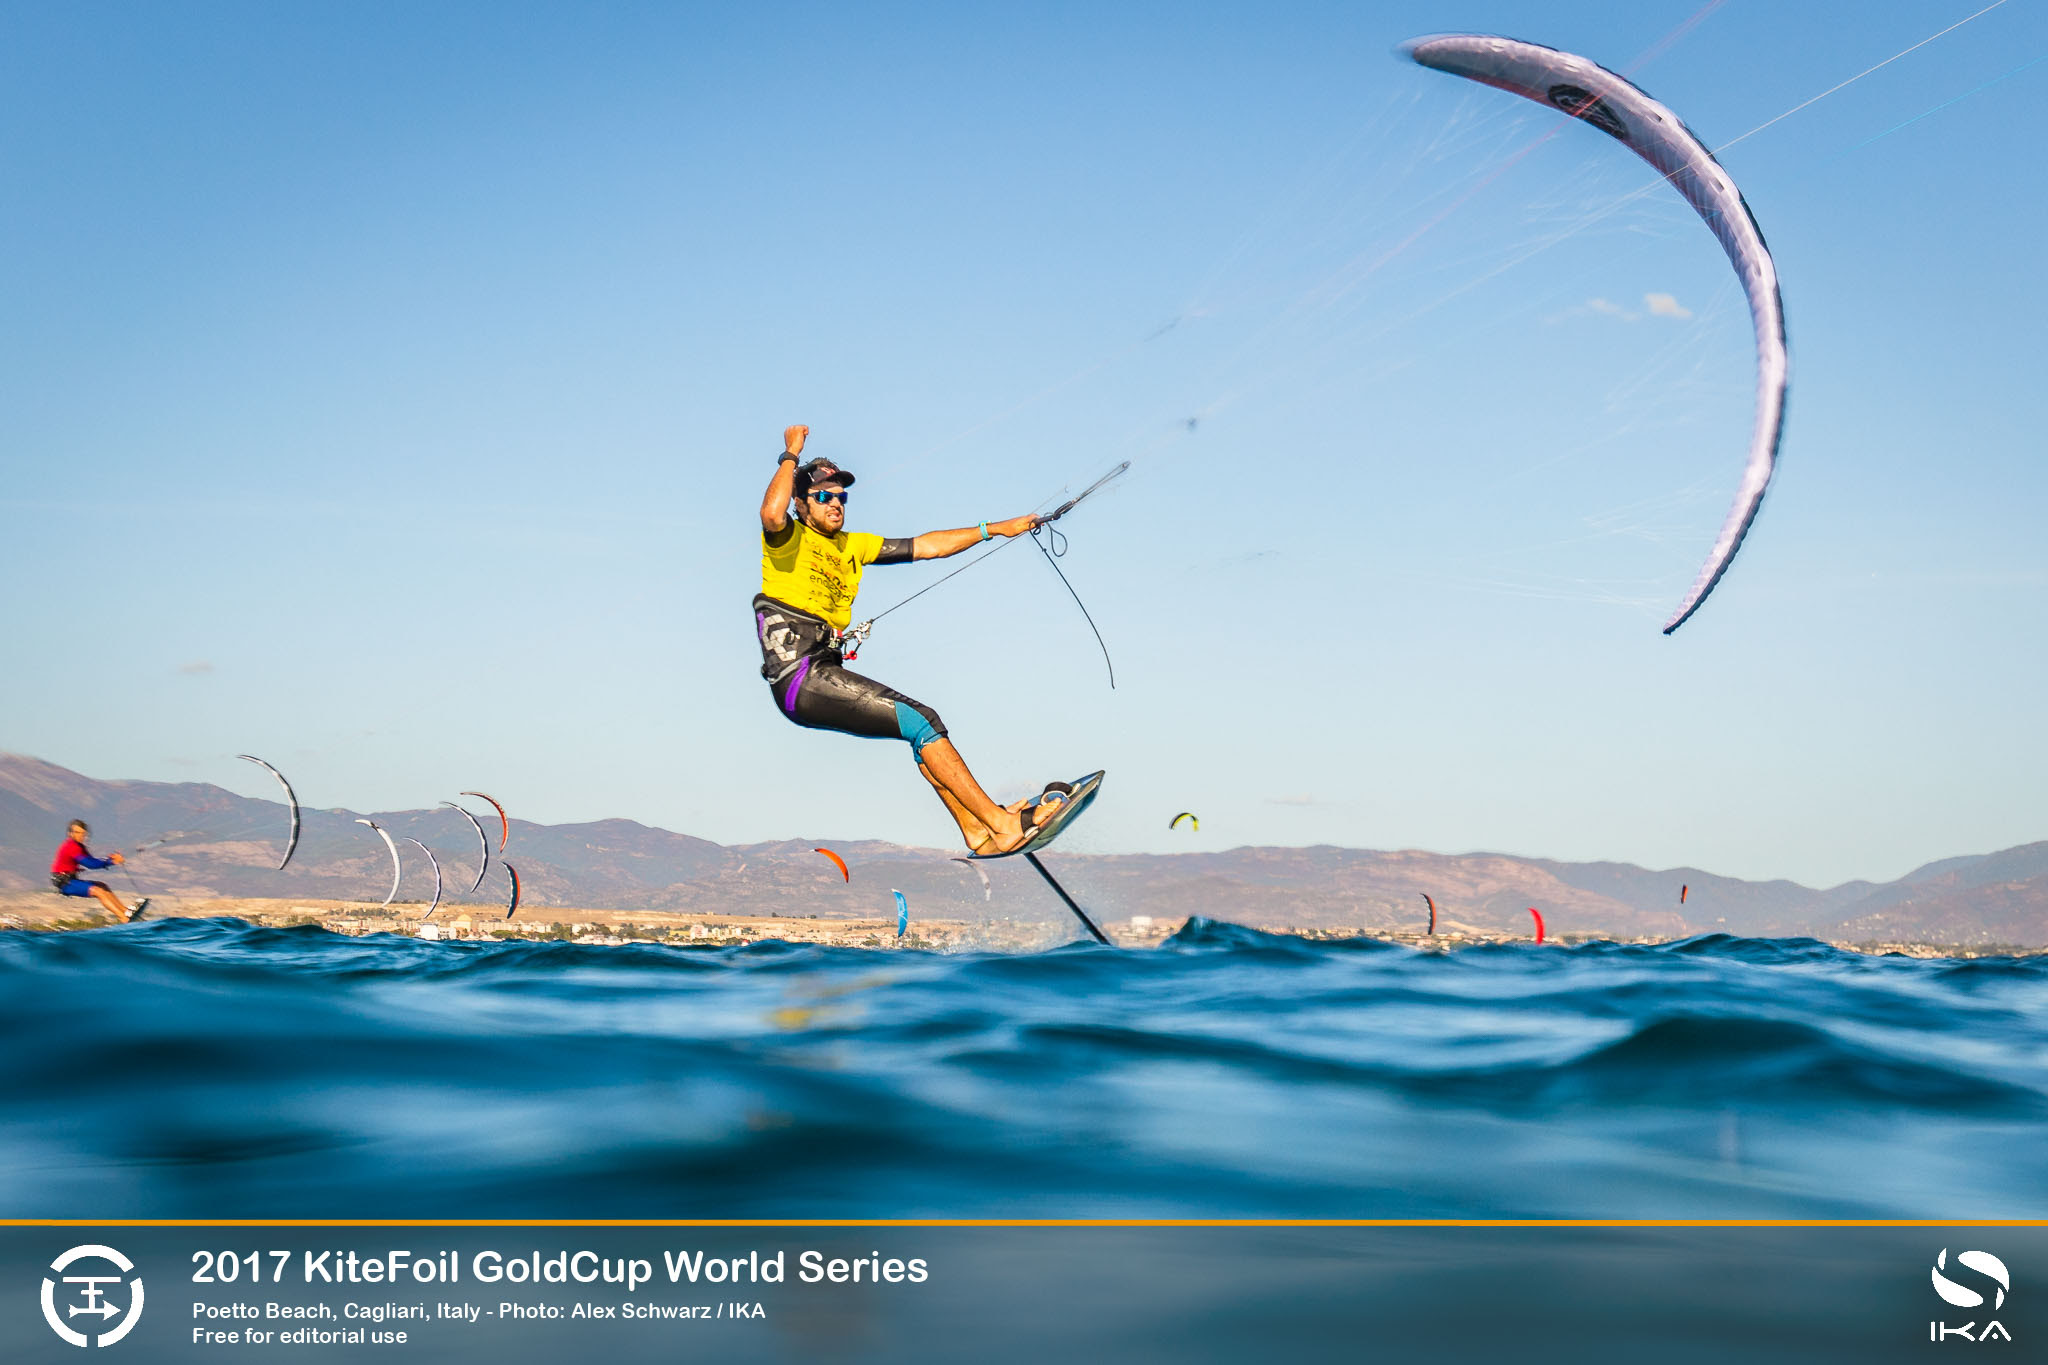 7d99e049 a599 4806 94cb c536edc3efd6 - Final day of racing at KiteFoil World Championships